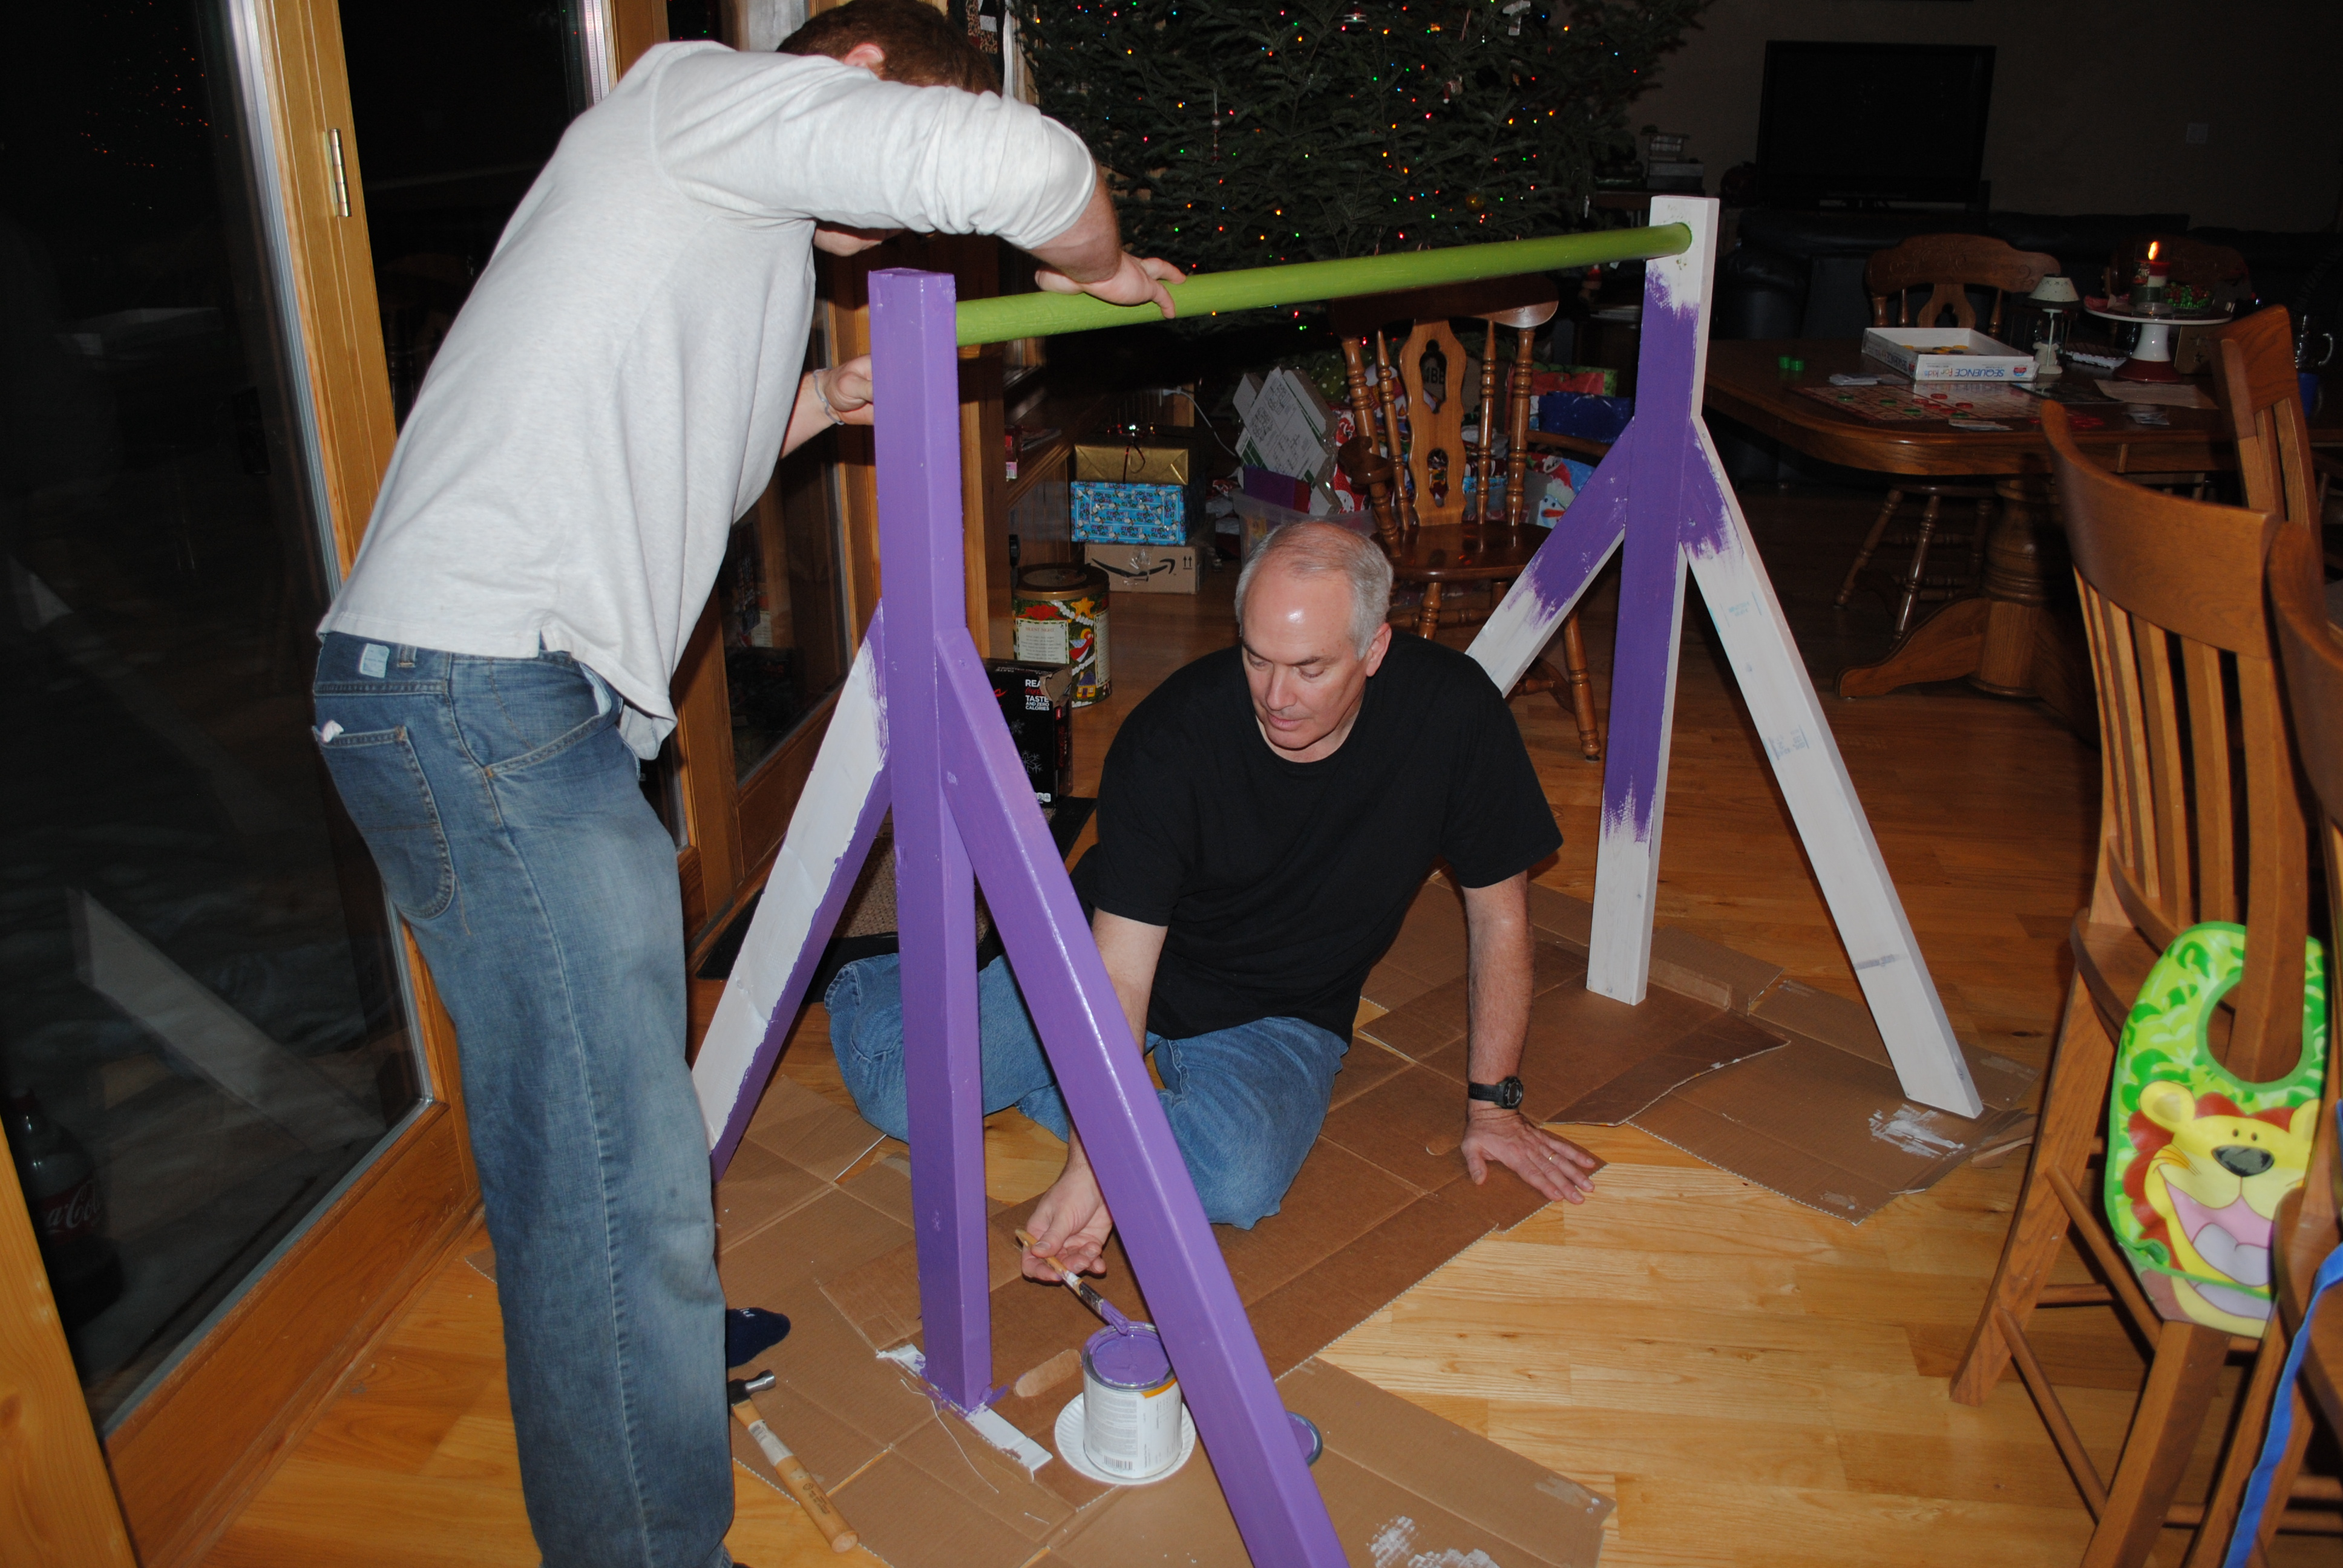 How To Build Gymnastics Bars http://hesowedshesewed.com/2012/01/16/gymnastics-bar/